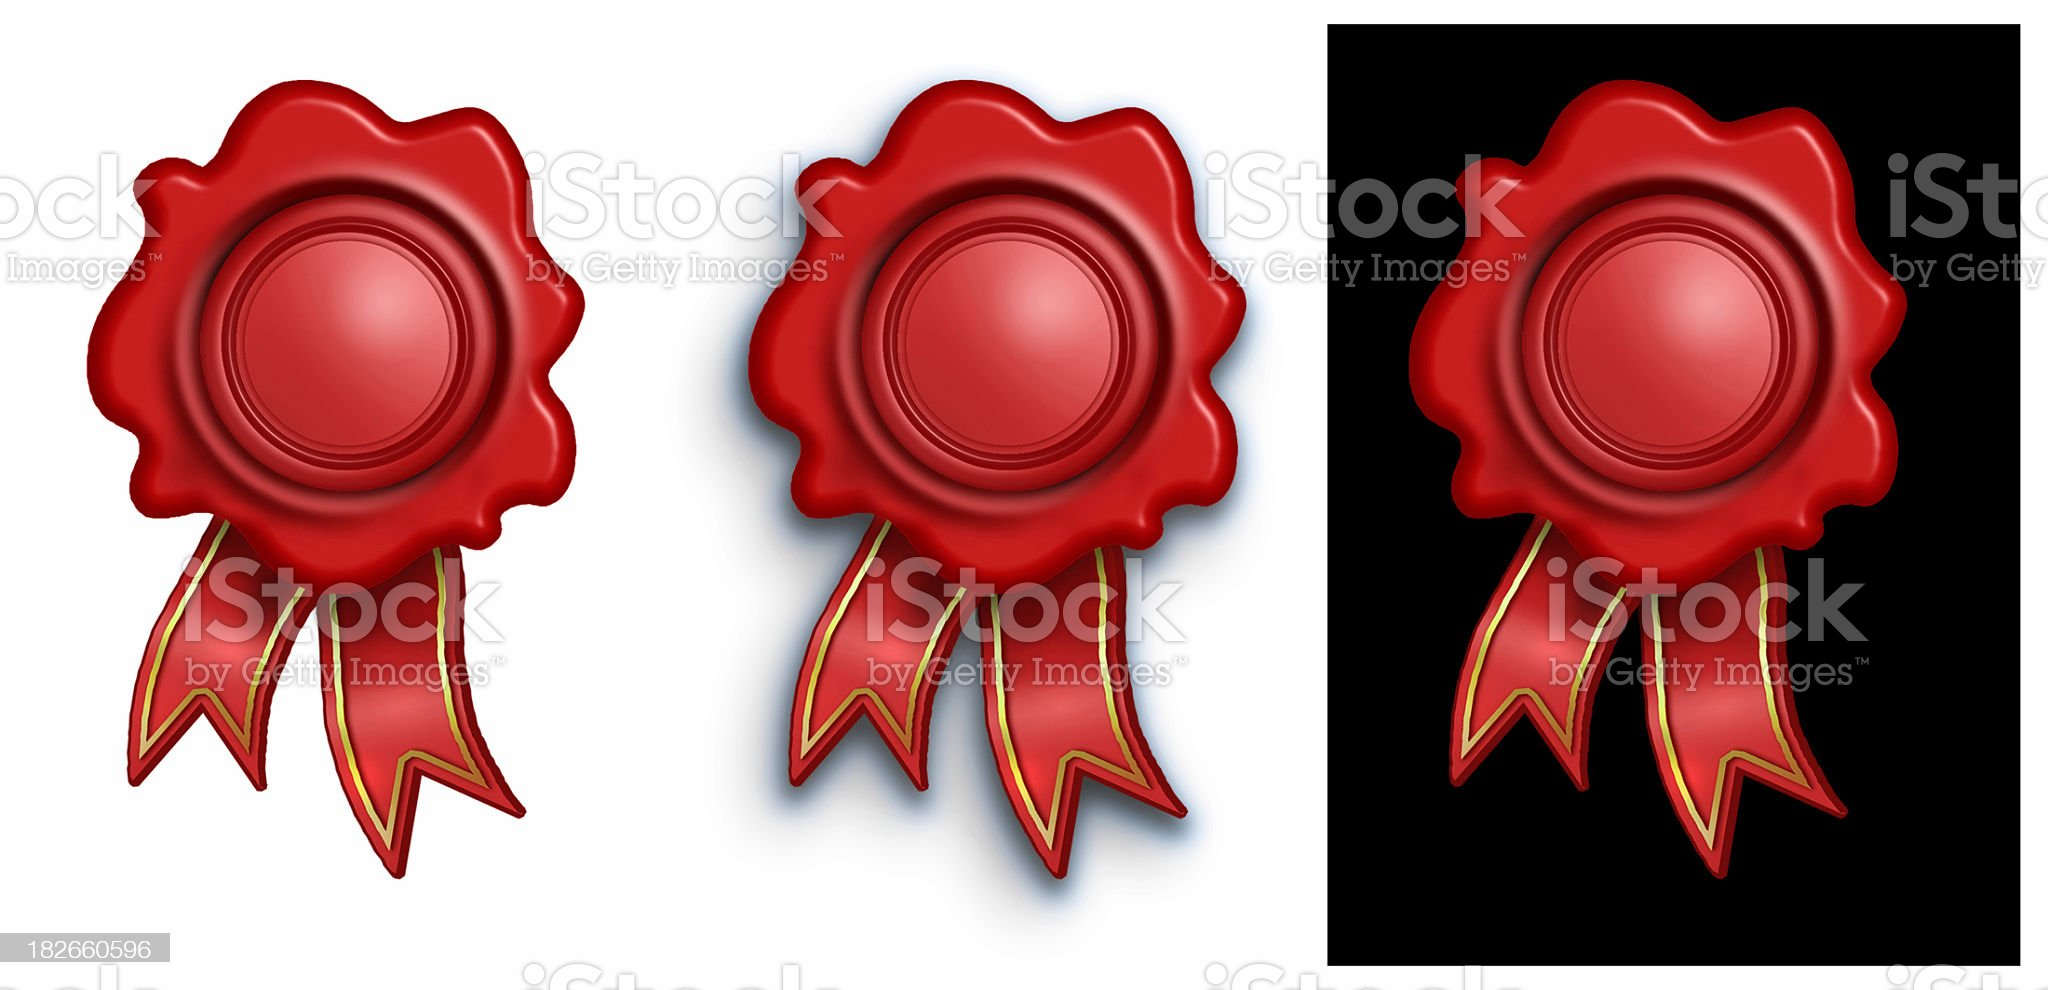 airbrushed Bees Wax Seal royalty-free stock photo